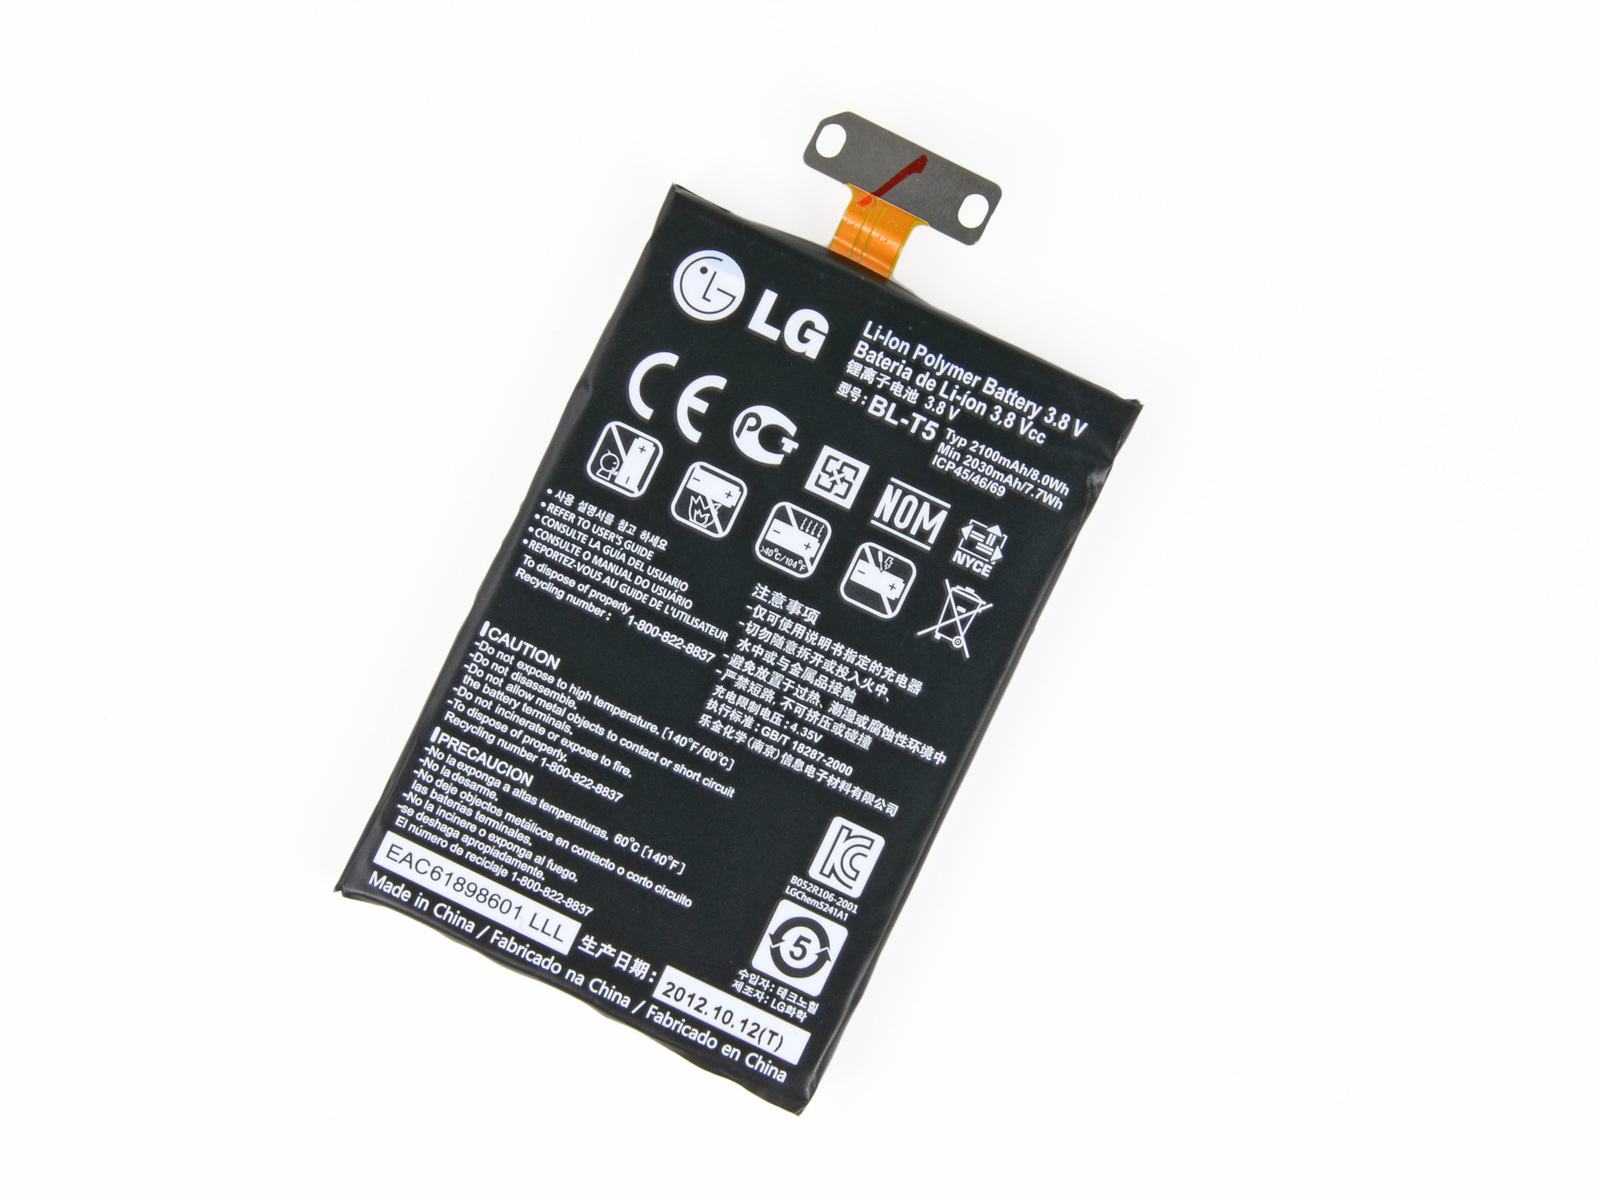 Nexus 4 Battery Replacement Ifixit Repair Guide Positions Of The Switch And Were Swapped In Circuit